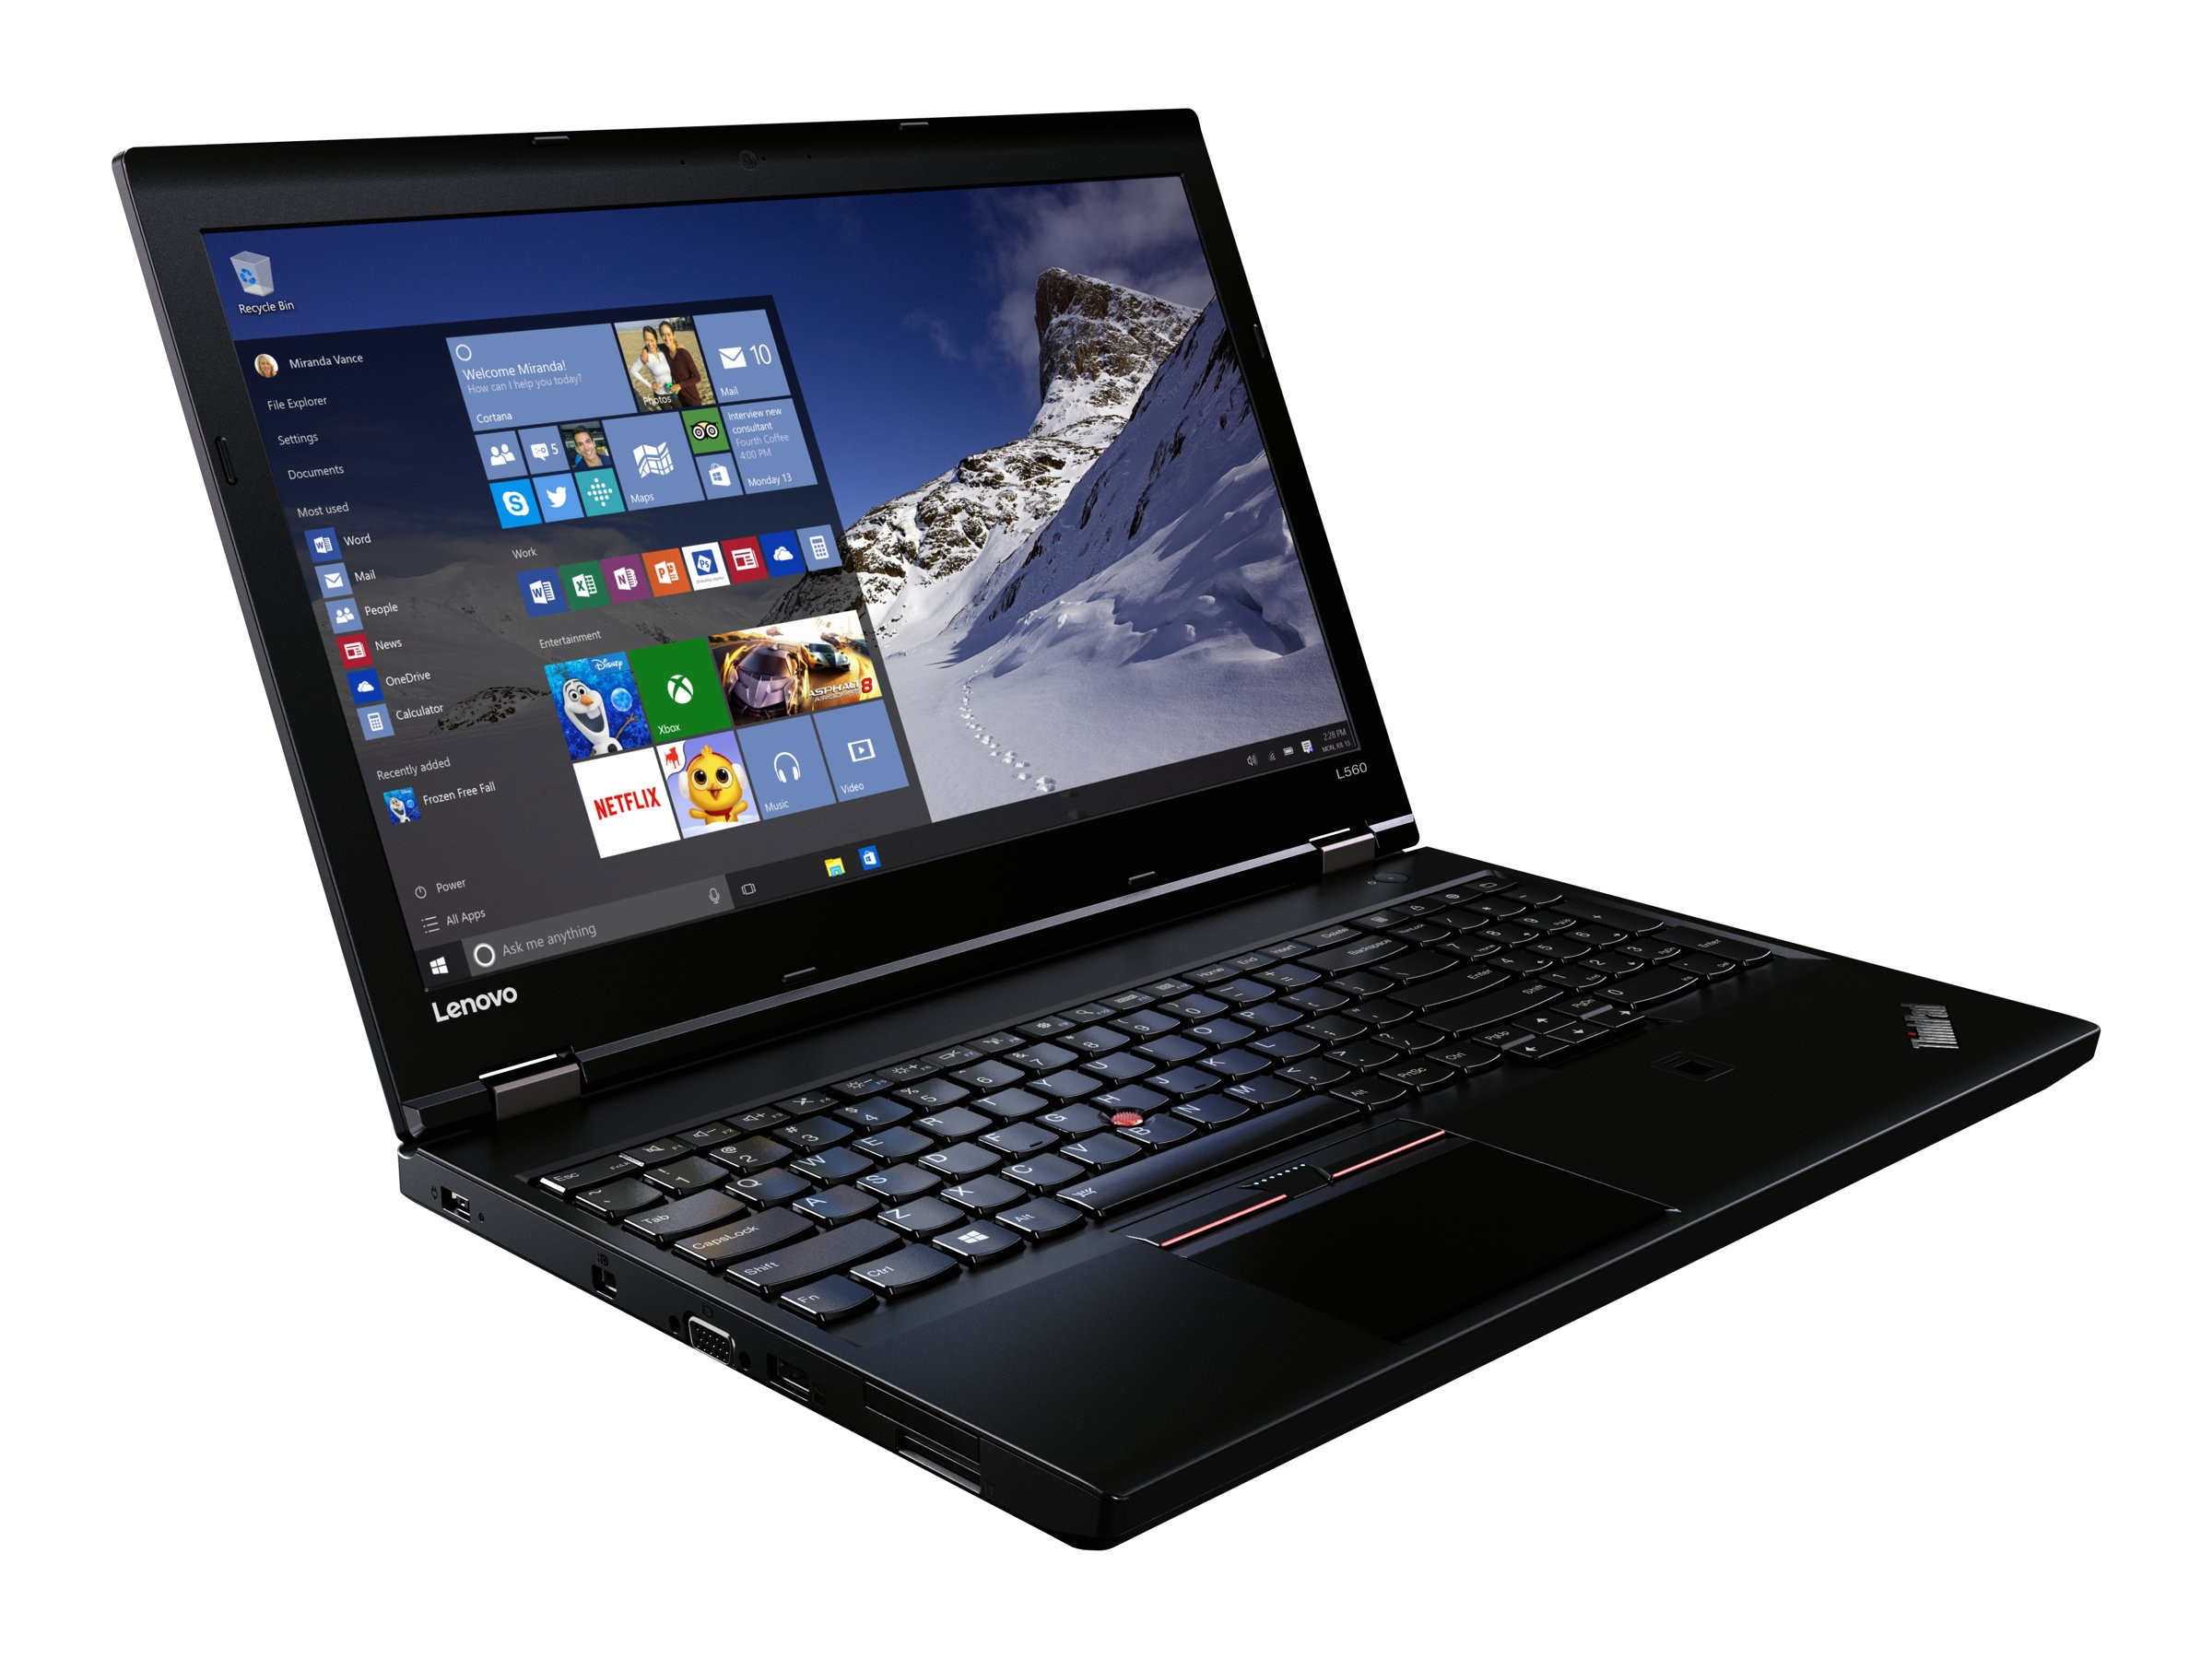 Lenovo TopSeller ThinkPad L560 2.3GHz Core i5 15.6in display